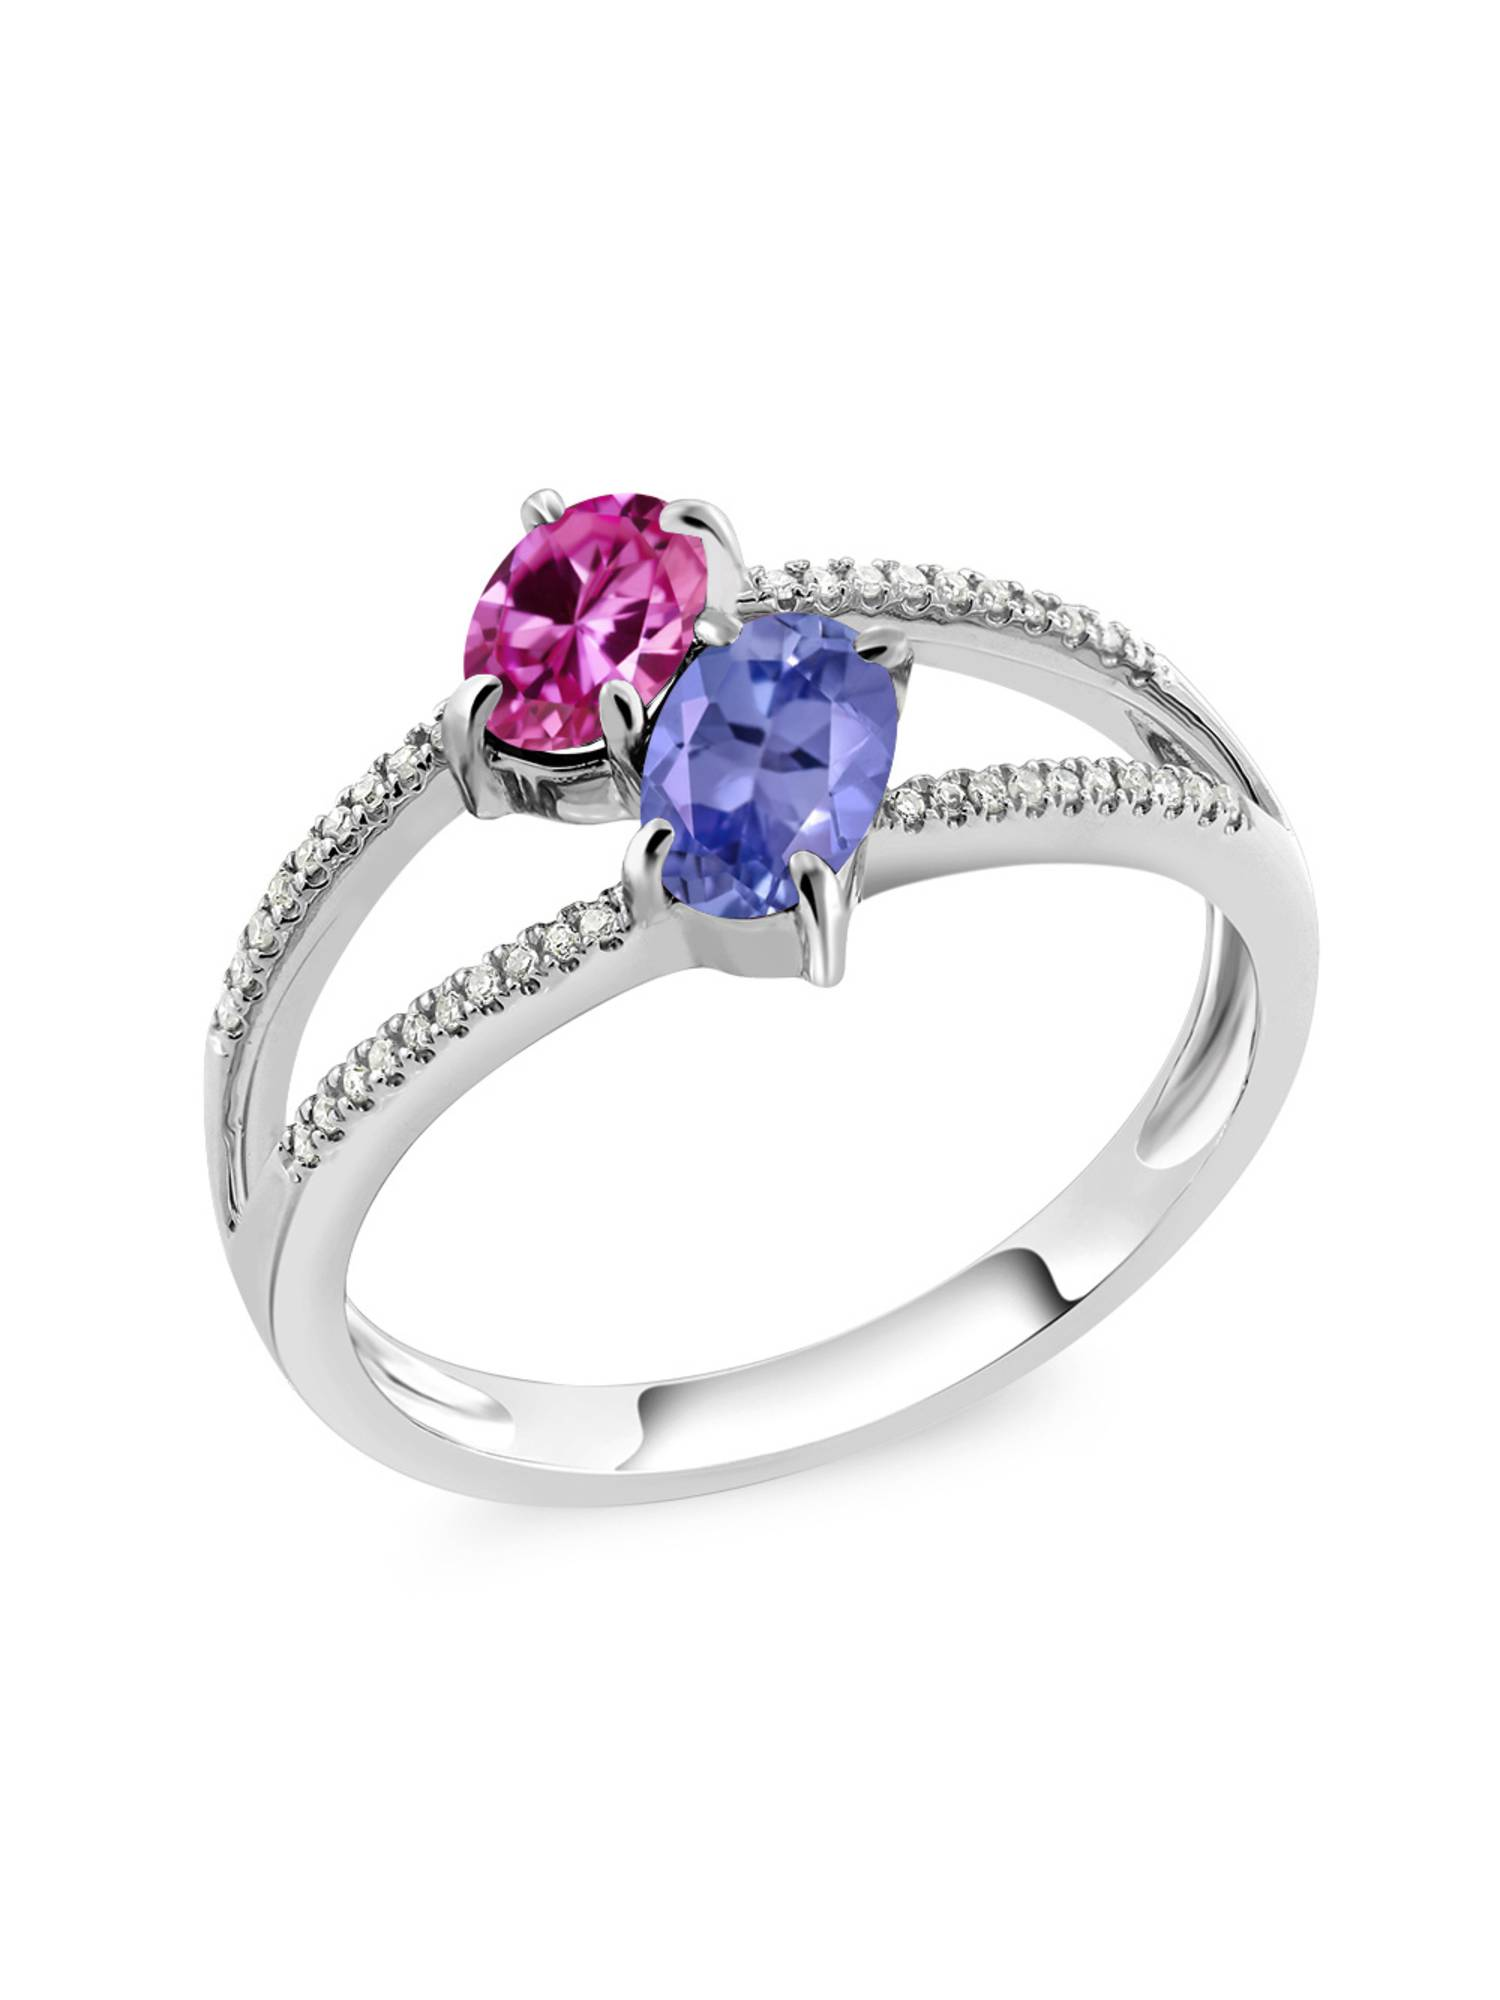 10K White Gold 1.23 Ct Oval Pink Created Sapphire Blue Tanzanite Two Stone Ring by